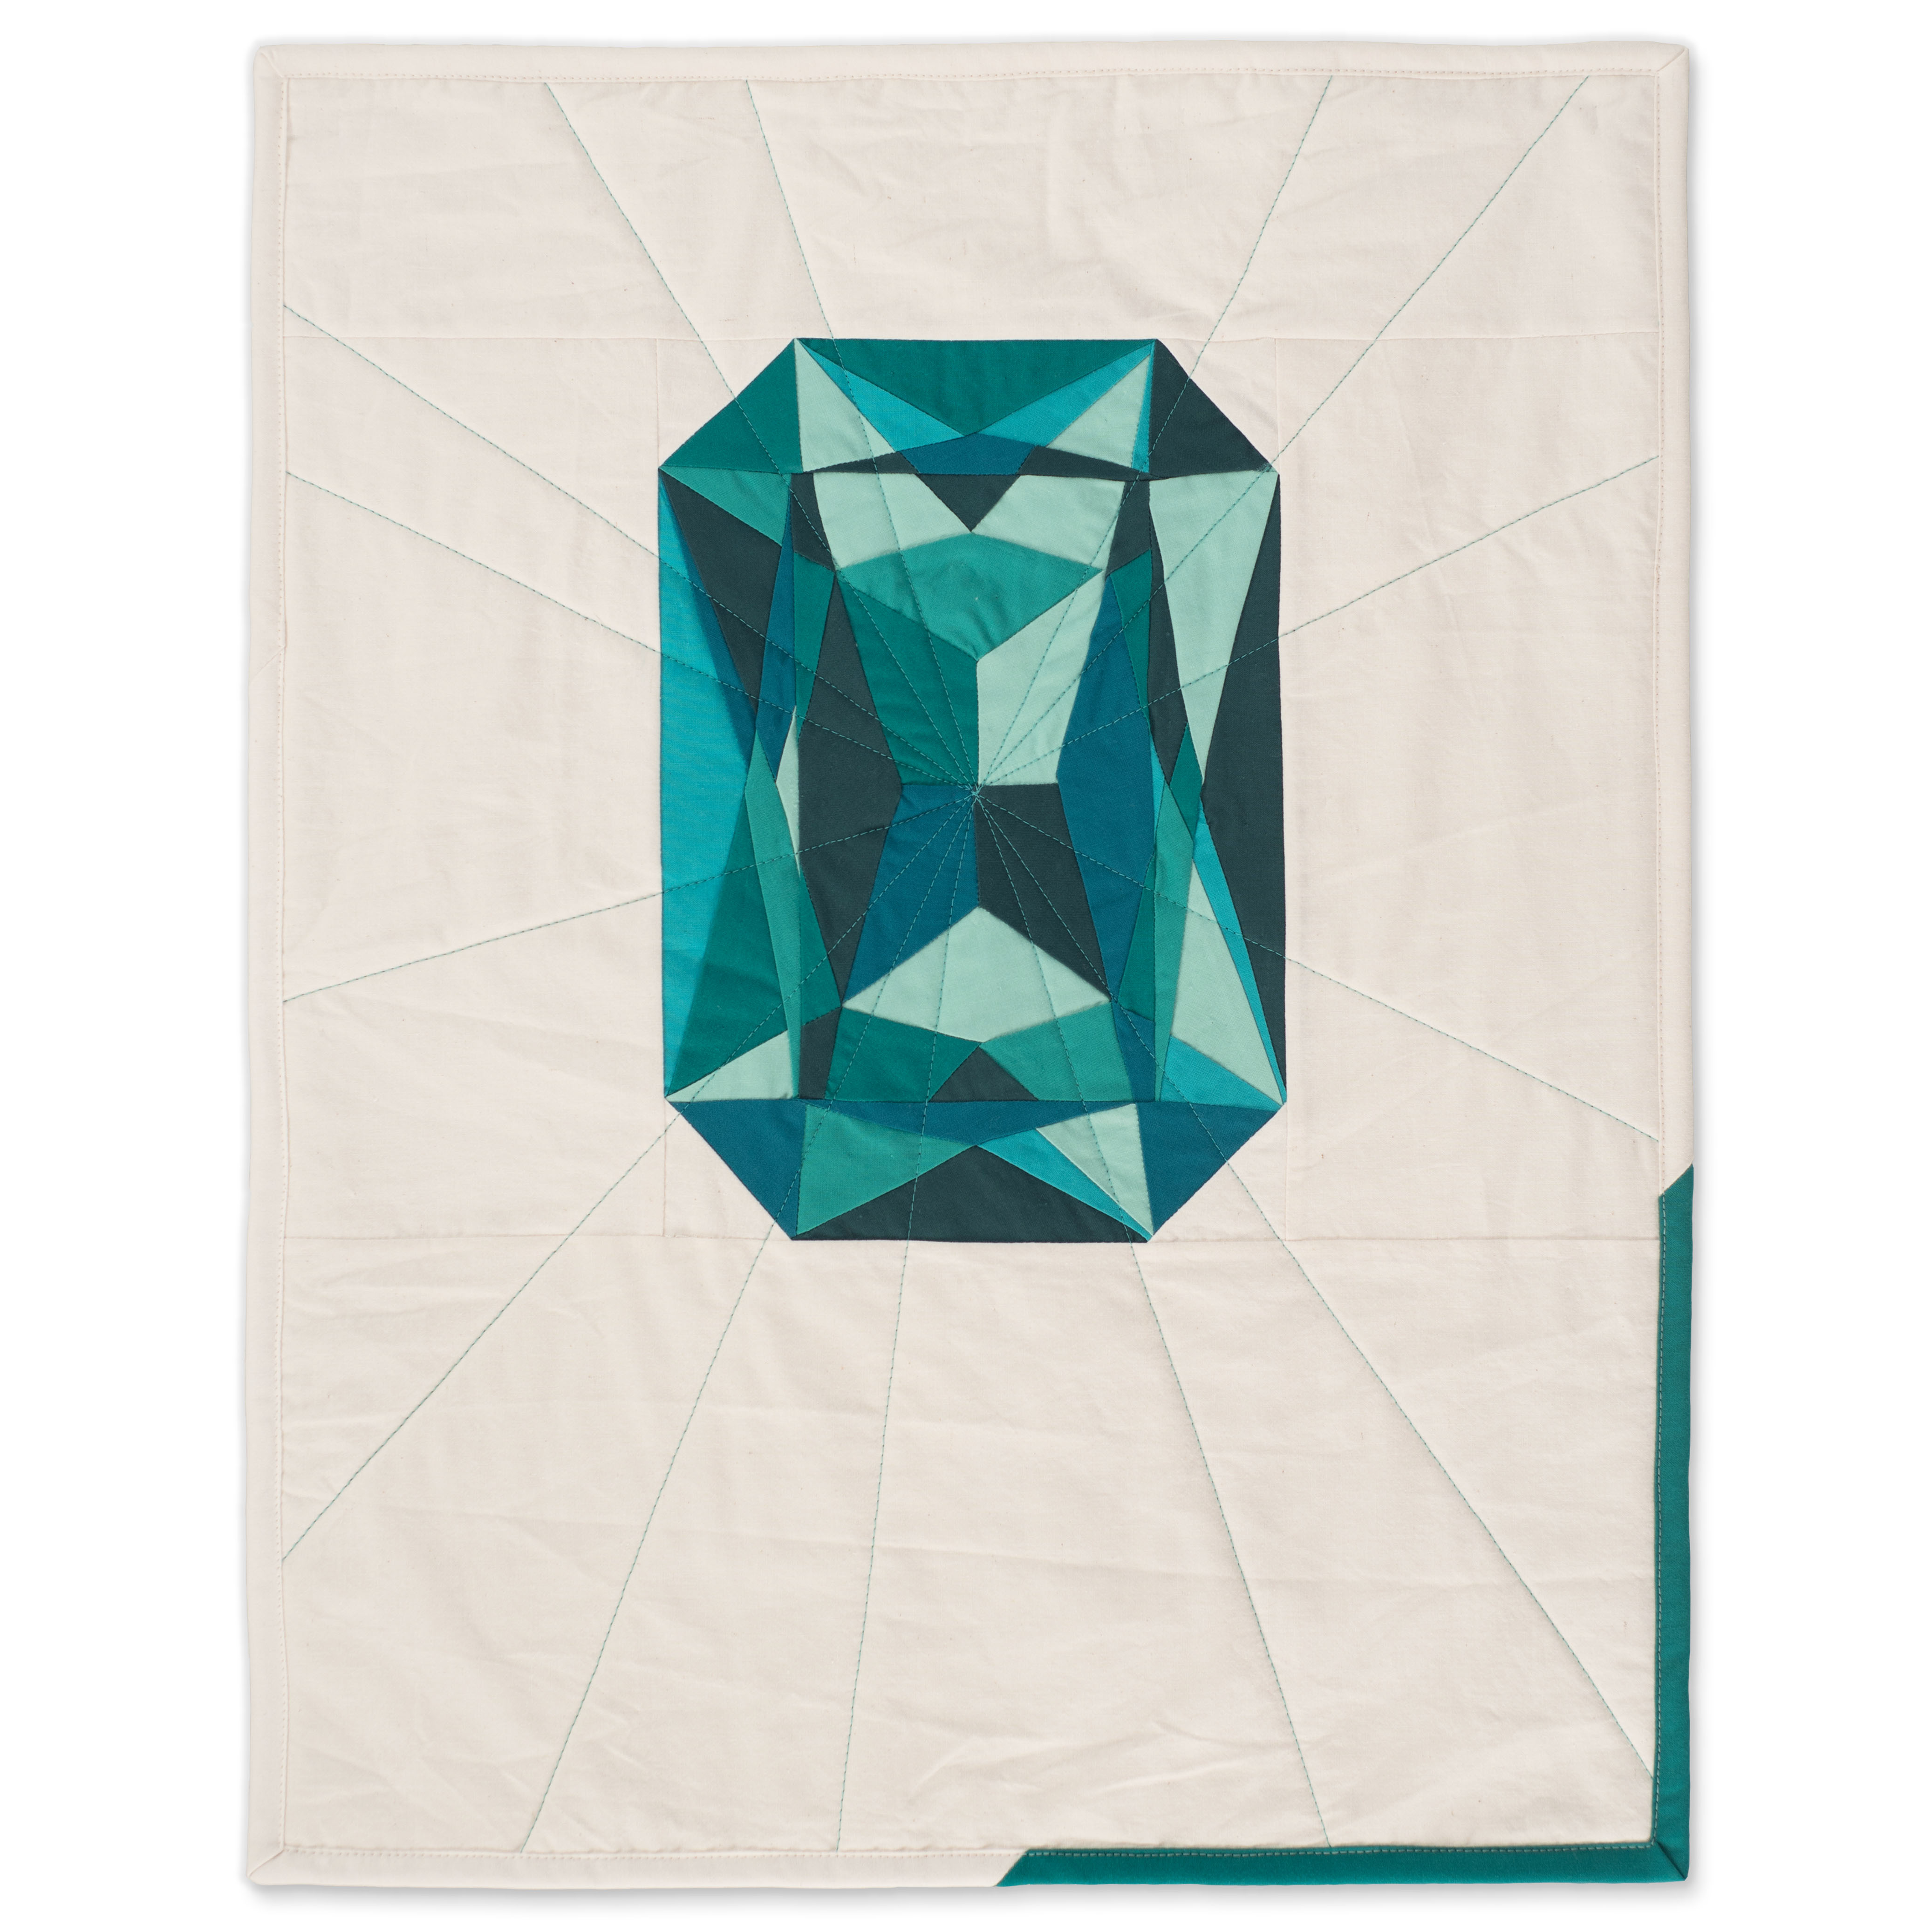 "<b>Emerald</b><br>20"" x 25""<br>Cotton, cotton batting<br><a href=""mailto:hello@3rdstoryworkshop.com?Subject=Emerald%20Gemology"" target=""_top"" rel=""noopener noreferrer"">Inquire</a>"